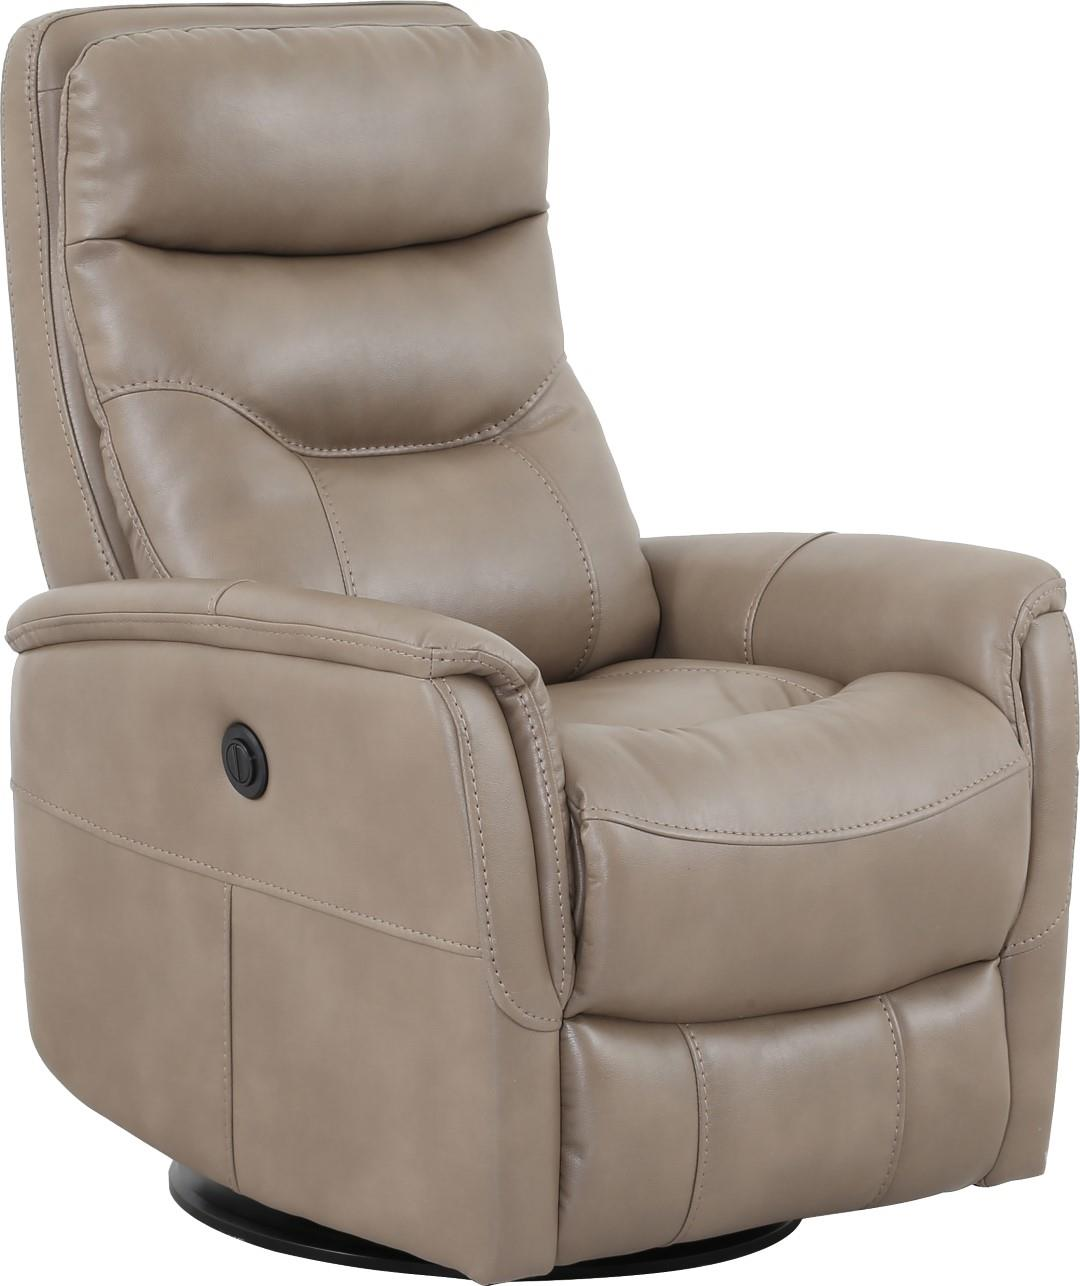 best large barnett recliner furniture products tryp recliners